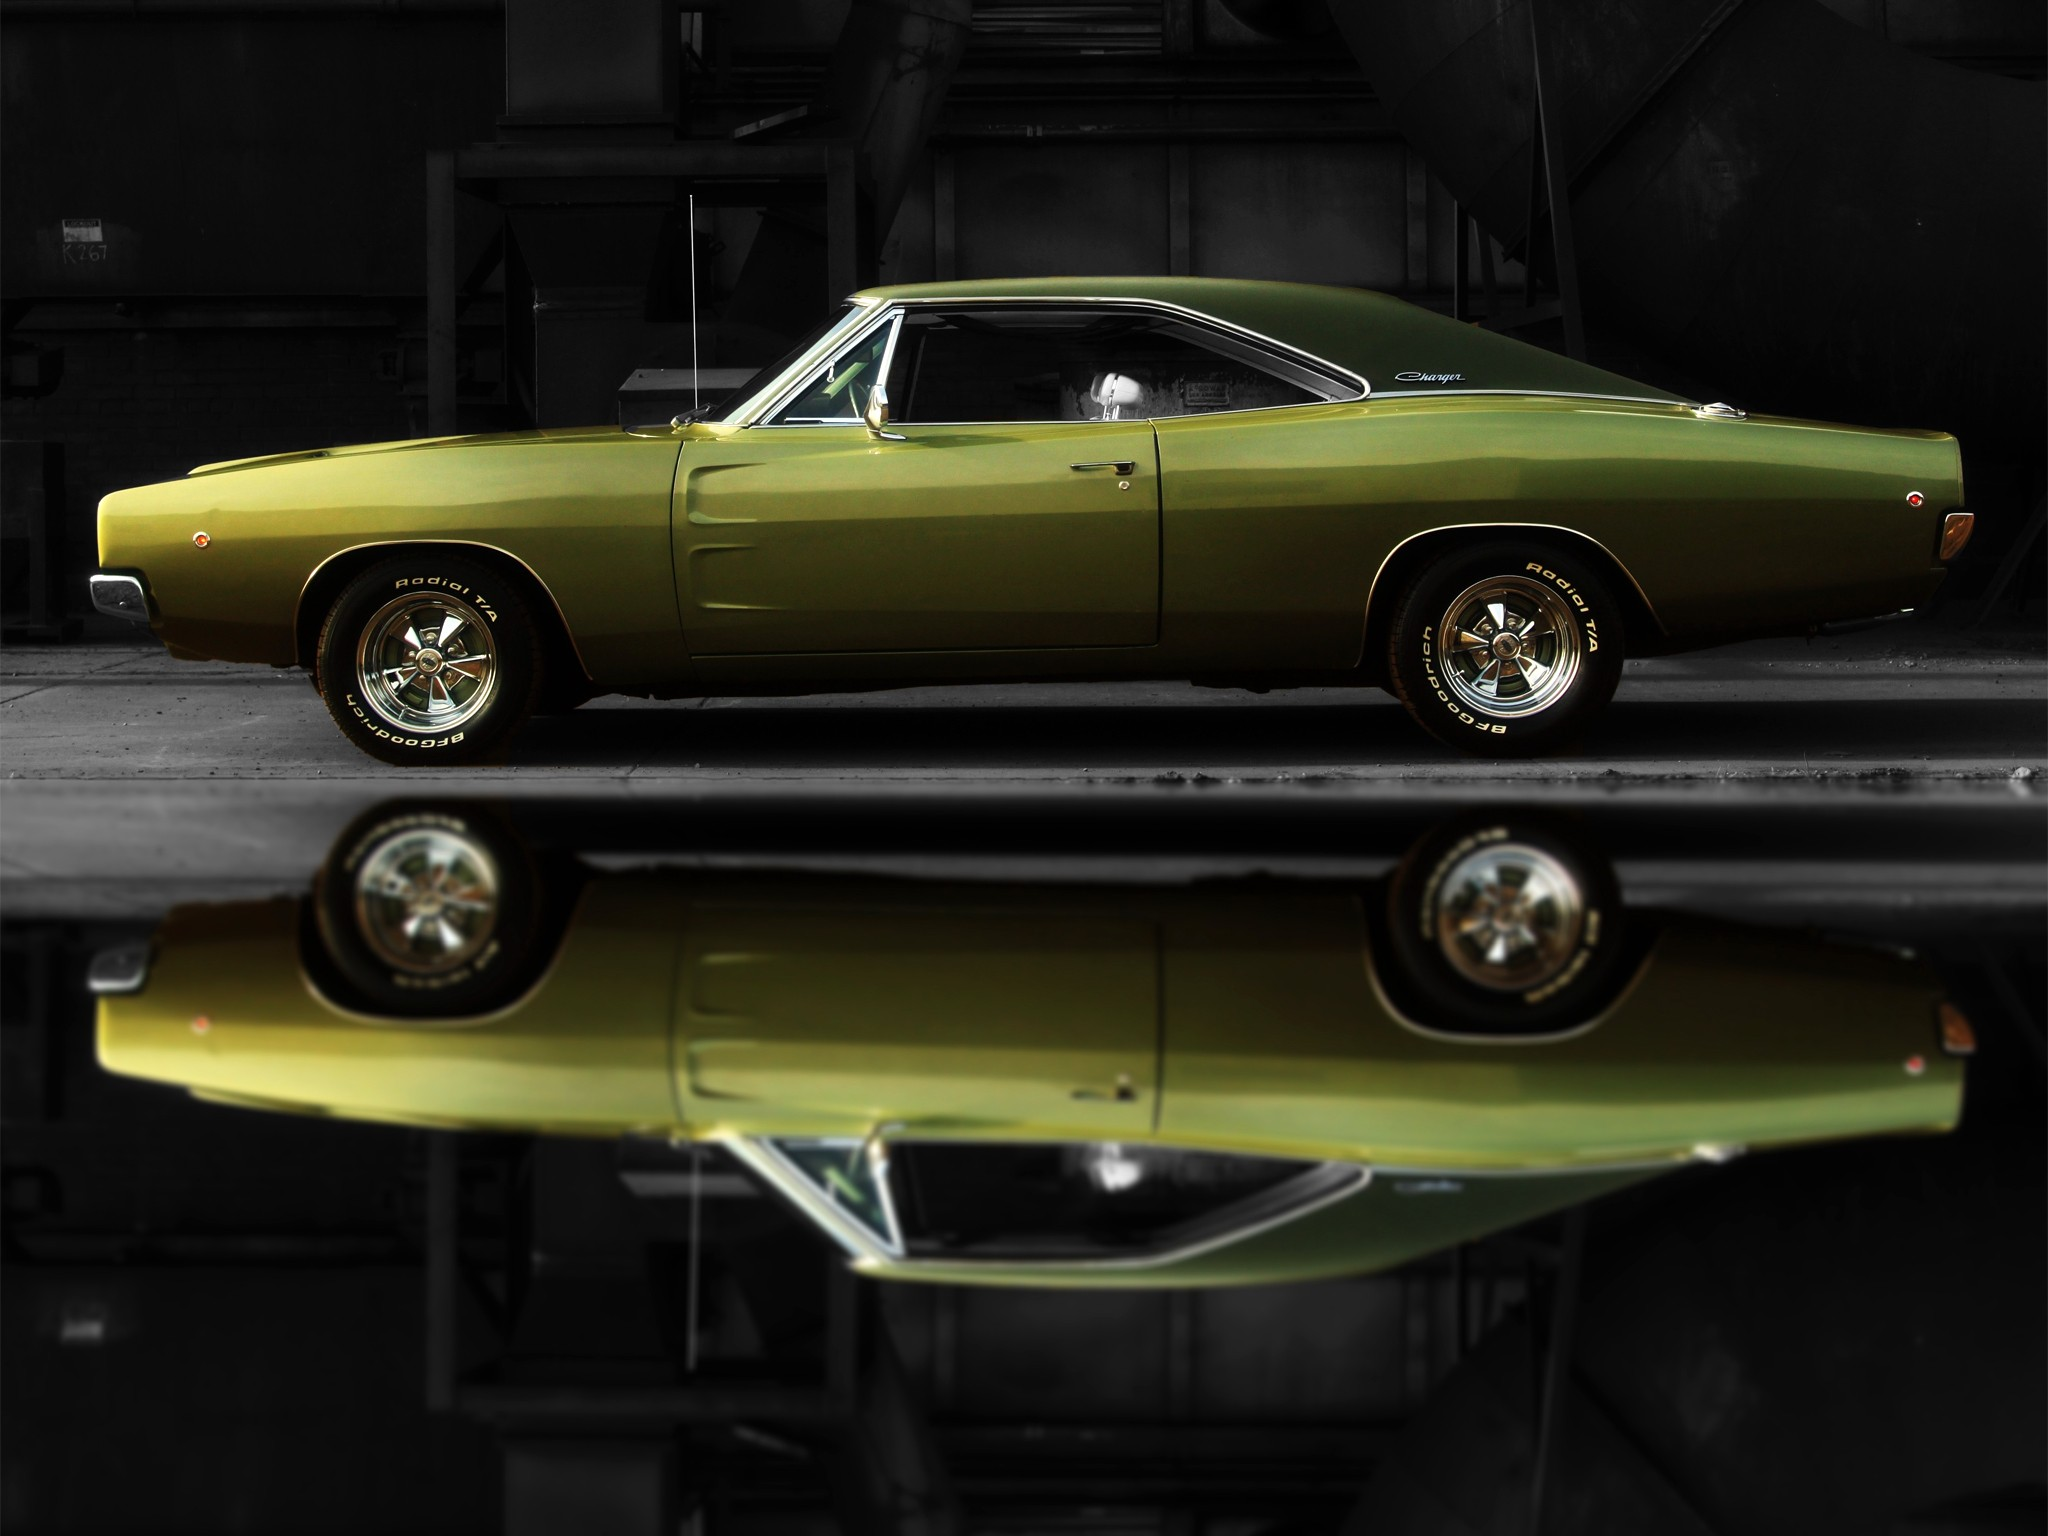 dodge charger muscle cars reflection old car car dodge